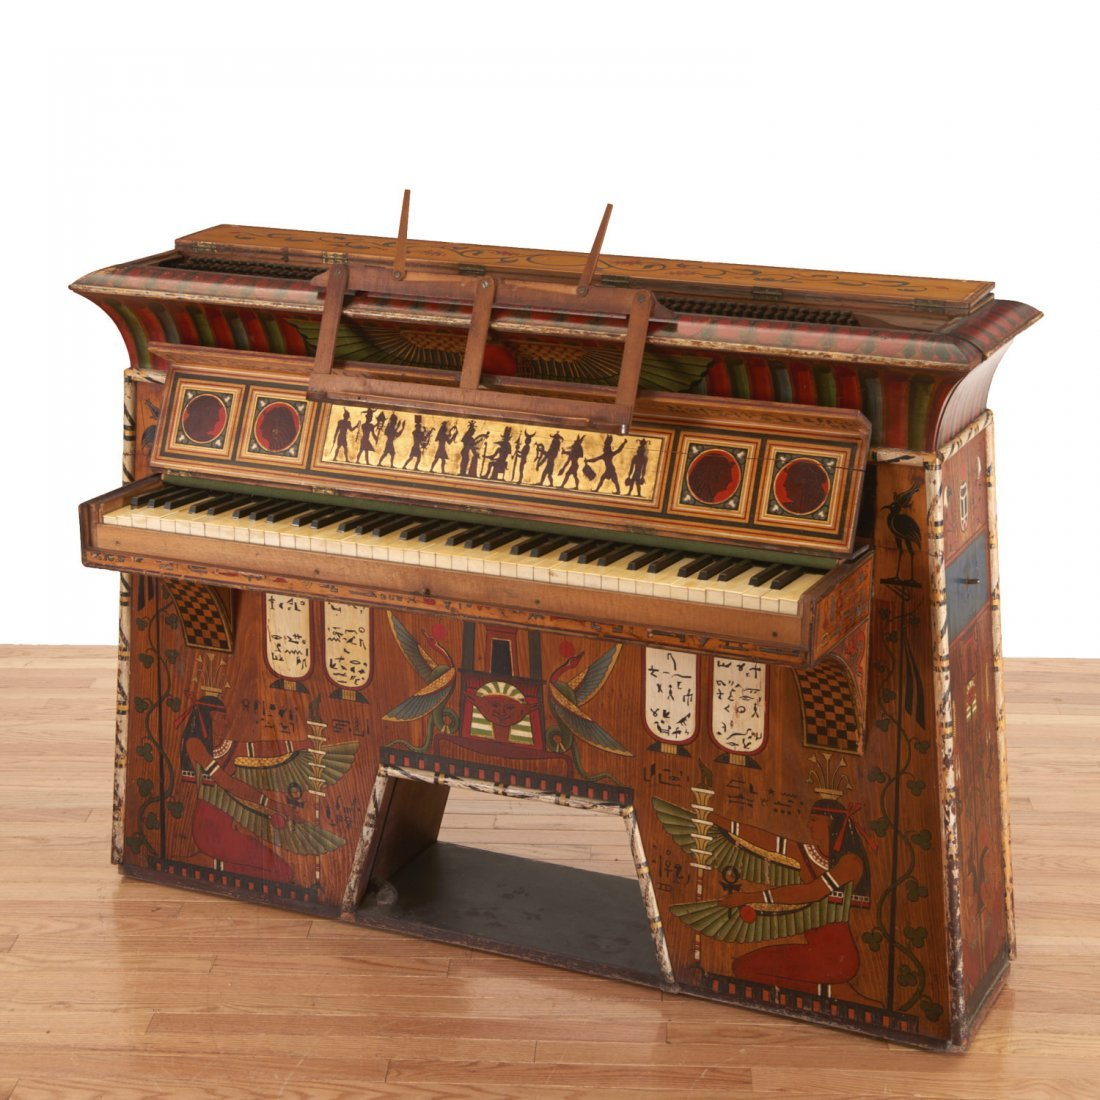 Egyptian Revival spinet piano - 2